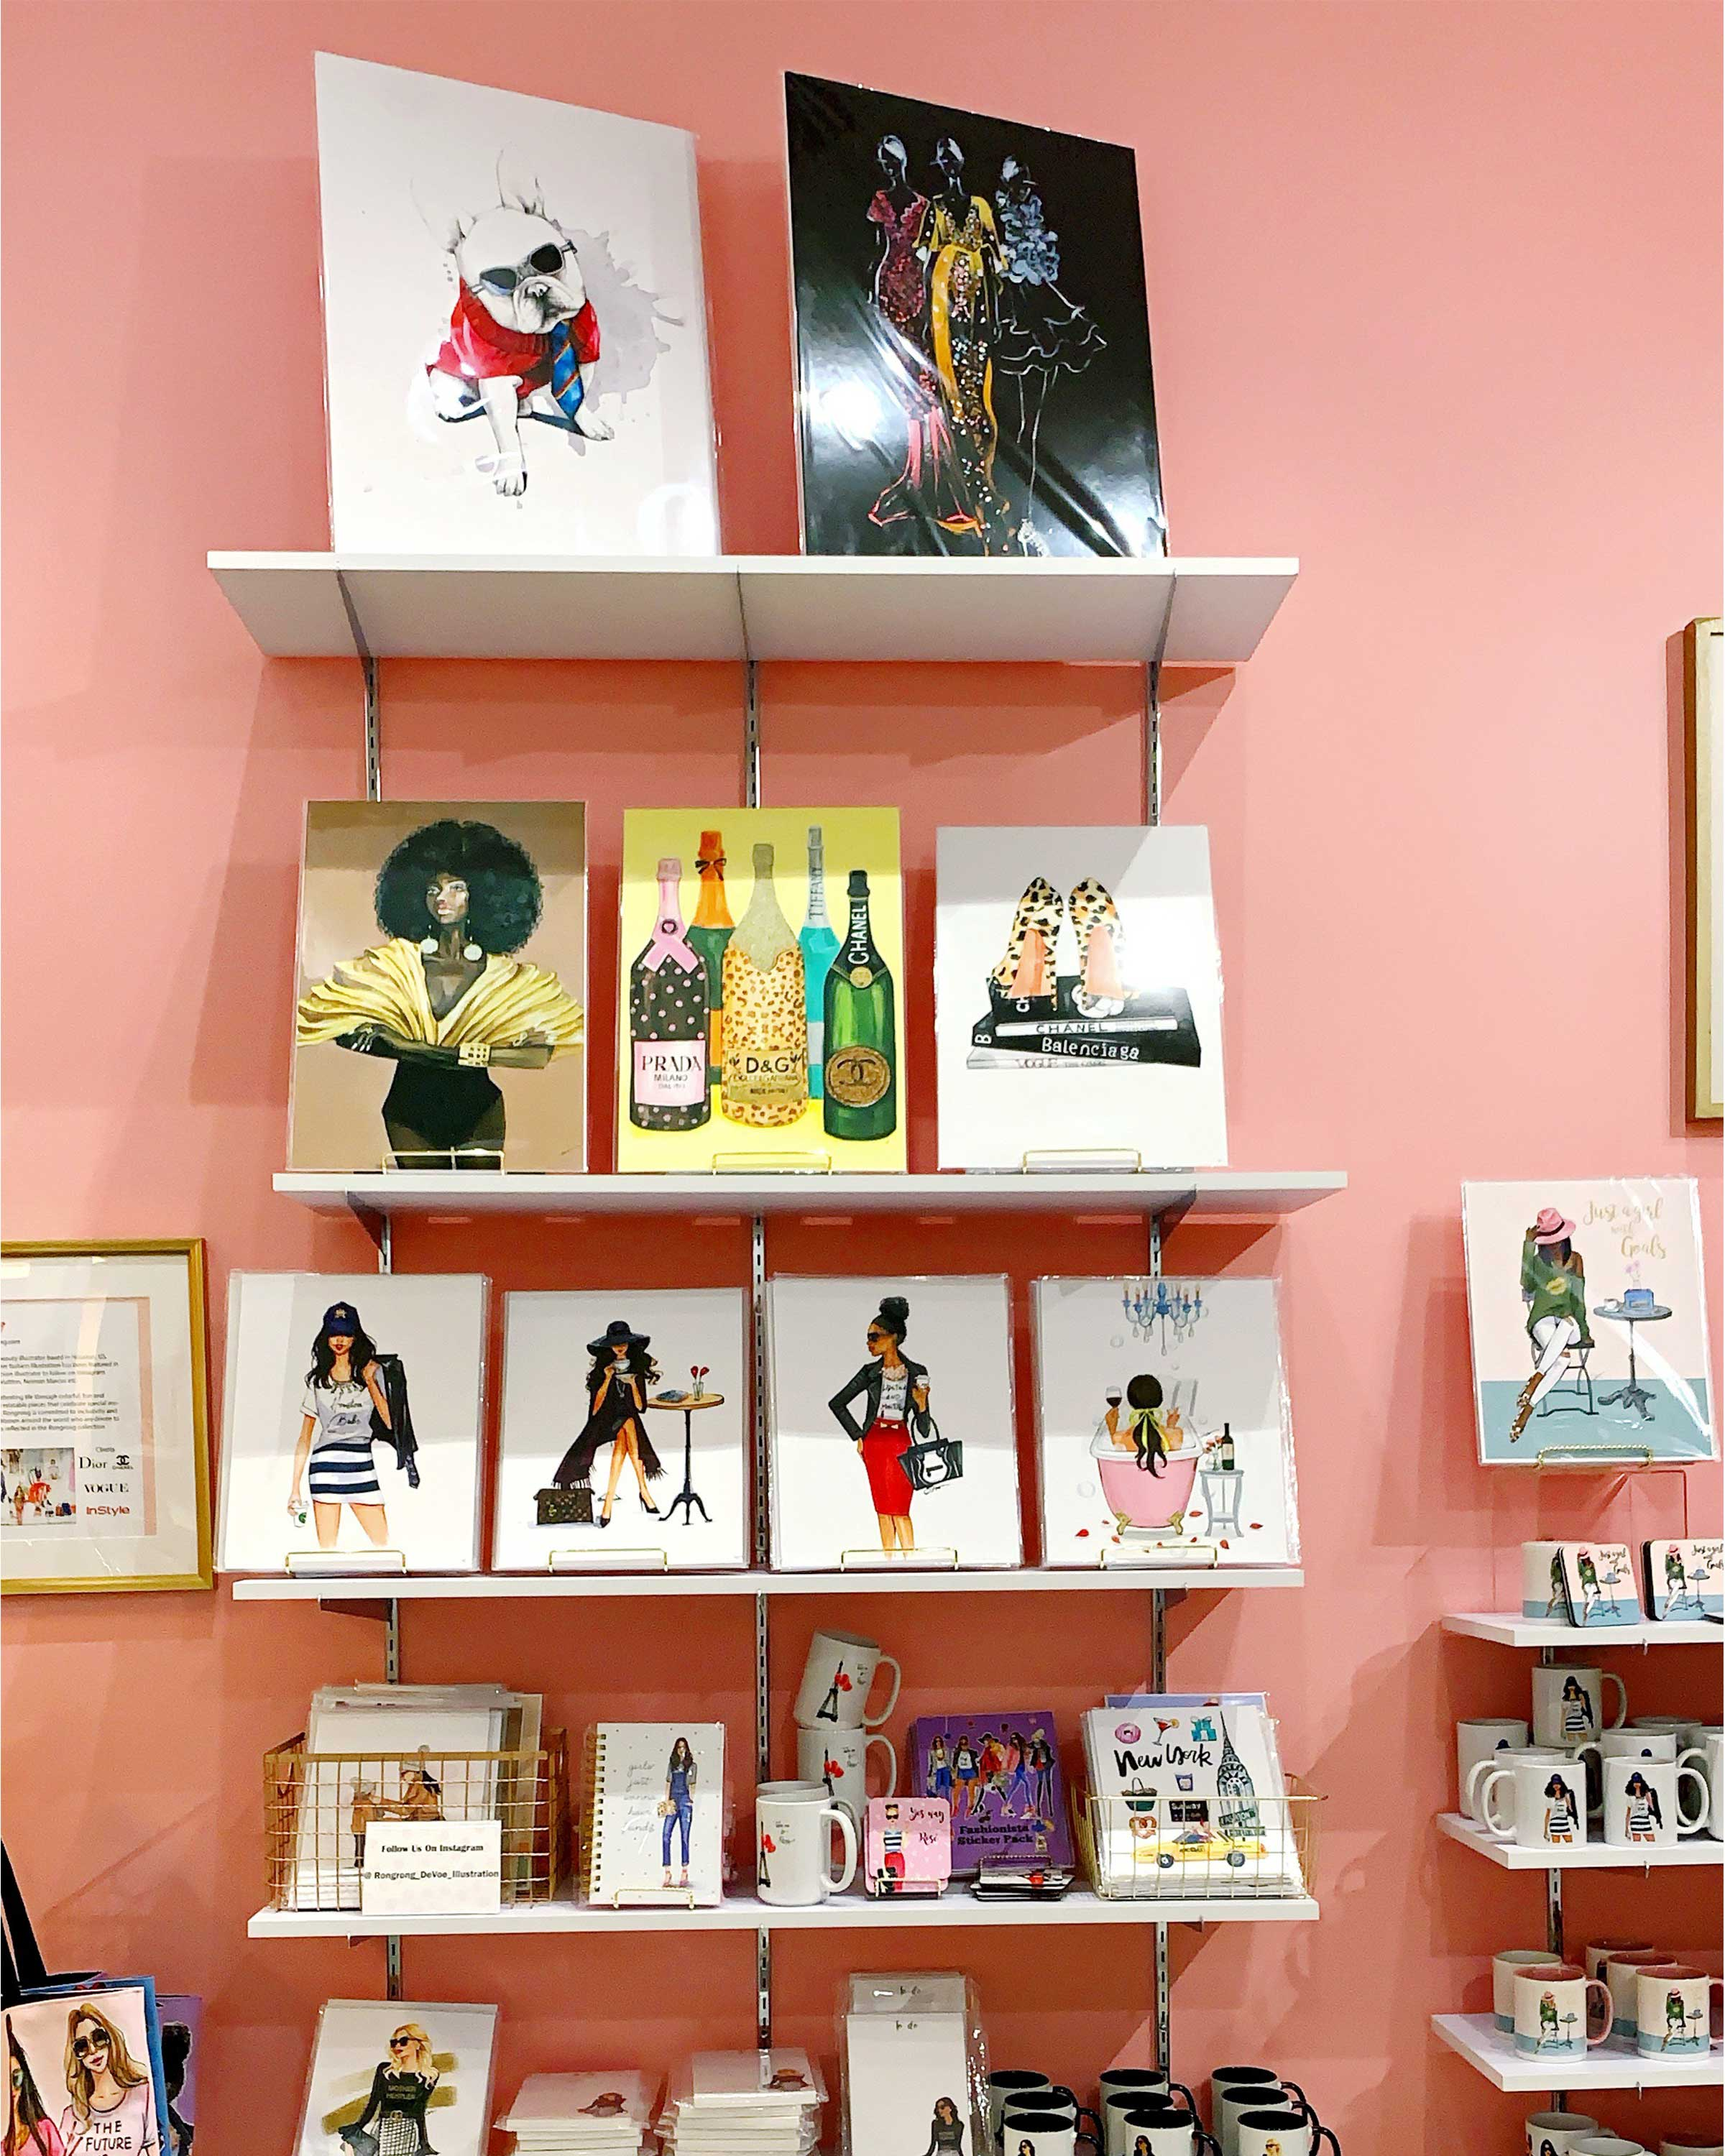 Rongrong DeVoe fashion illustration and gift shop in houston galleria